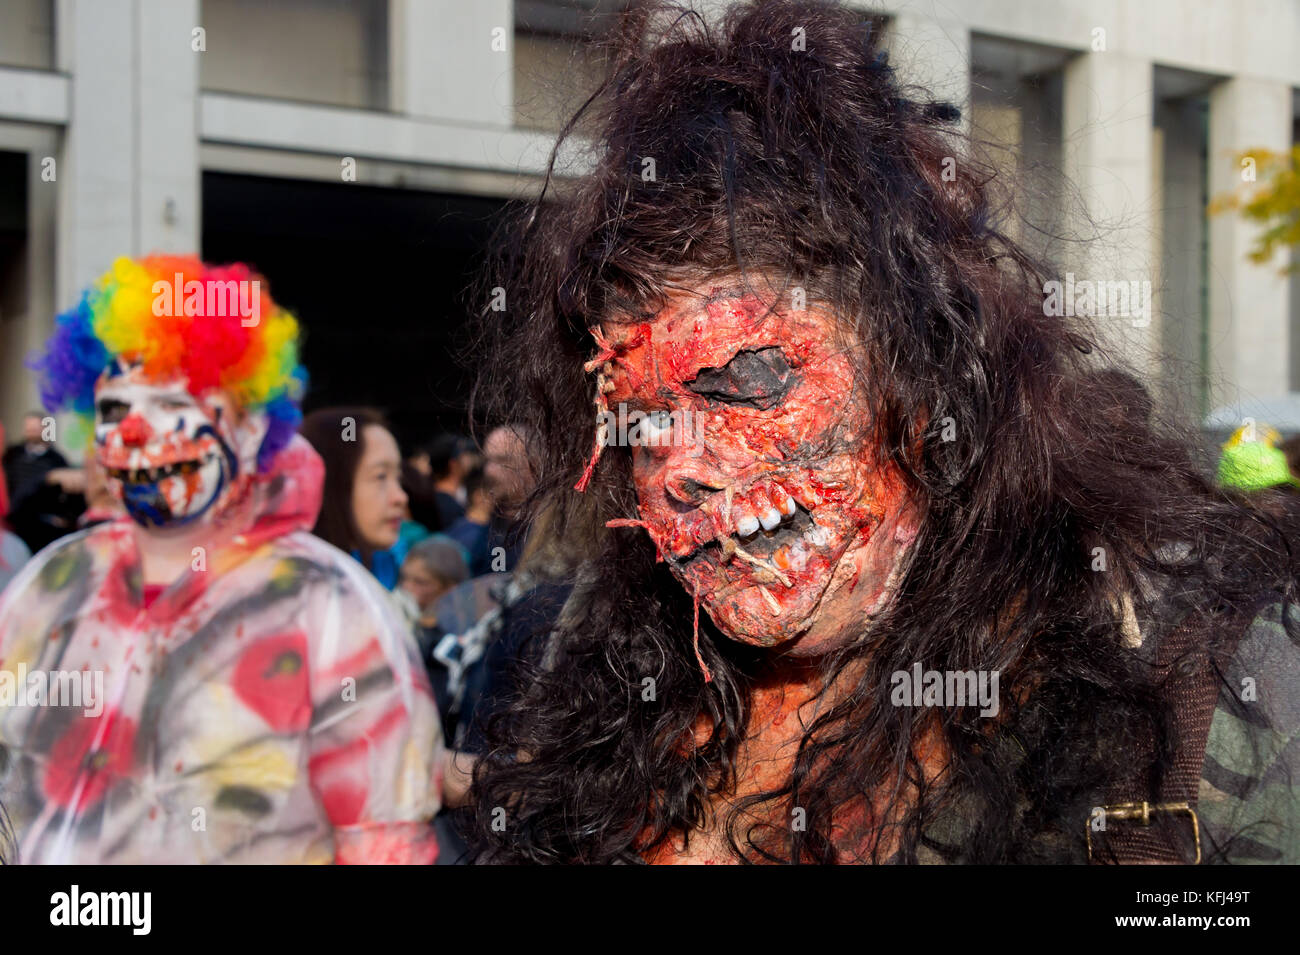 Montreal, Canada - October 28, 2017: People taking part in the Zombie Walk in Montreal Downtown - Stock Image